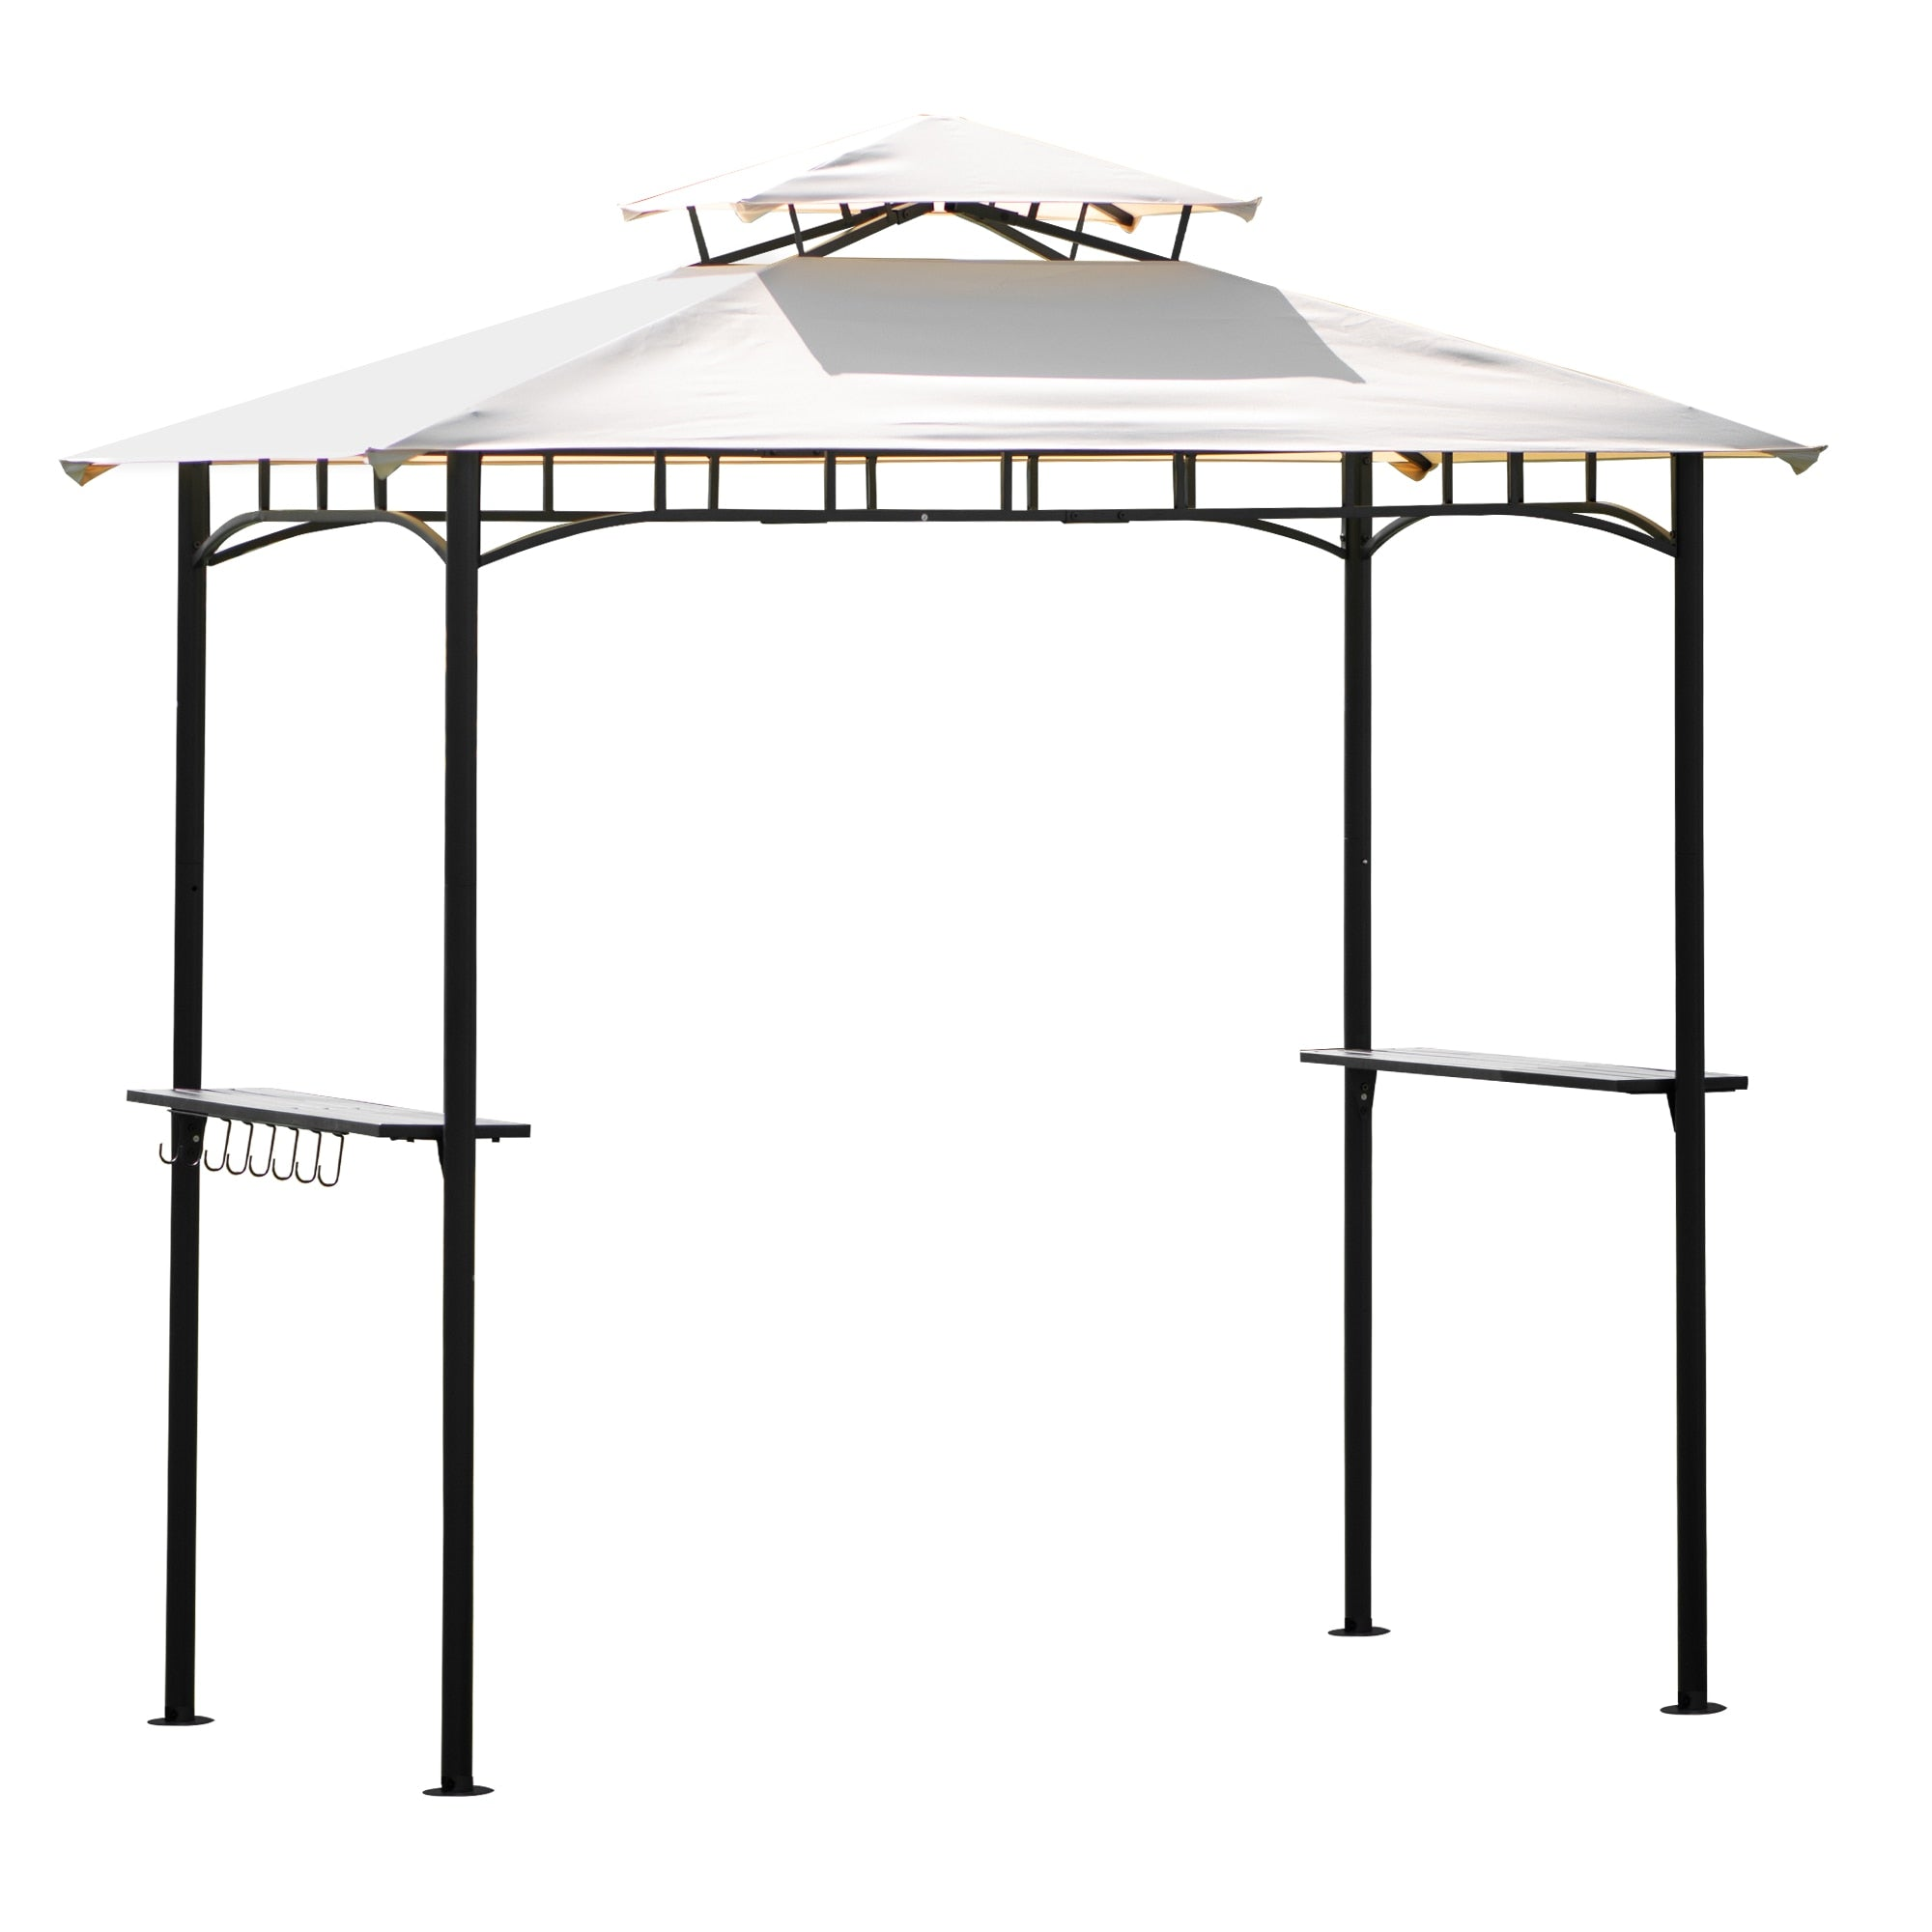 Patio Grill Gazebo Tented BBQ Canopy for Outdoor Activities | The Brand Decò